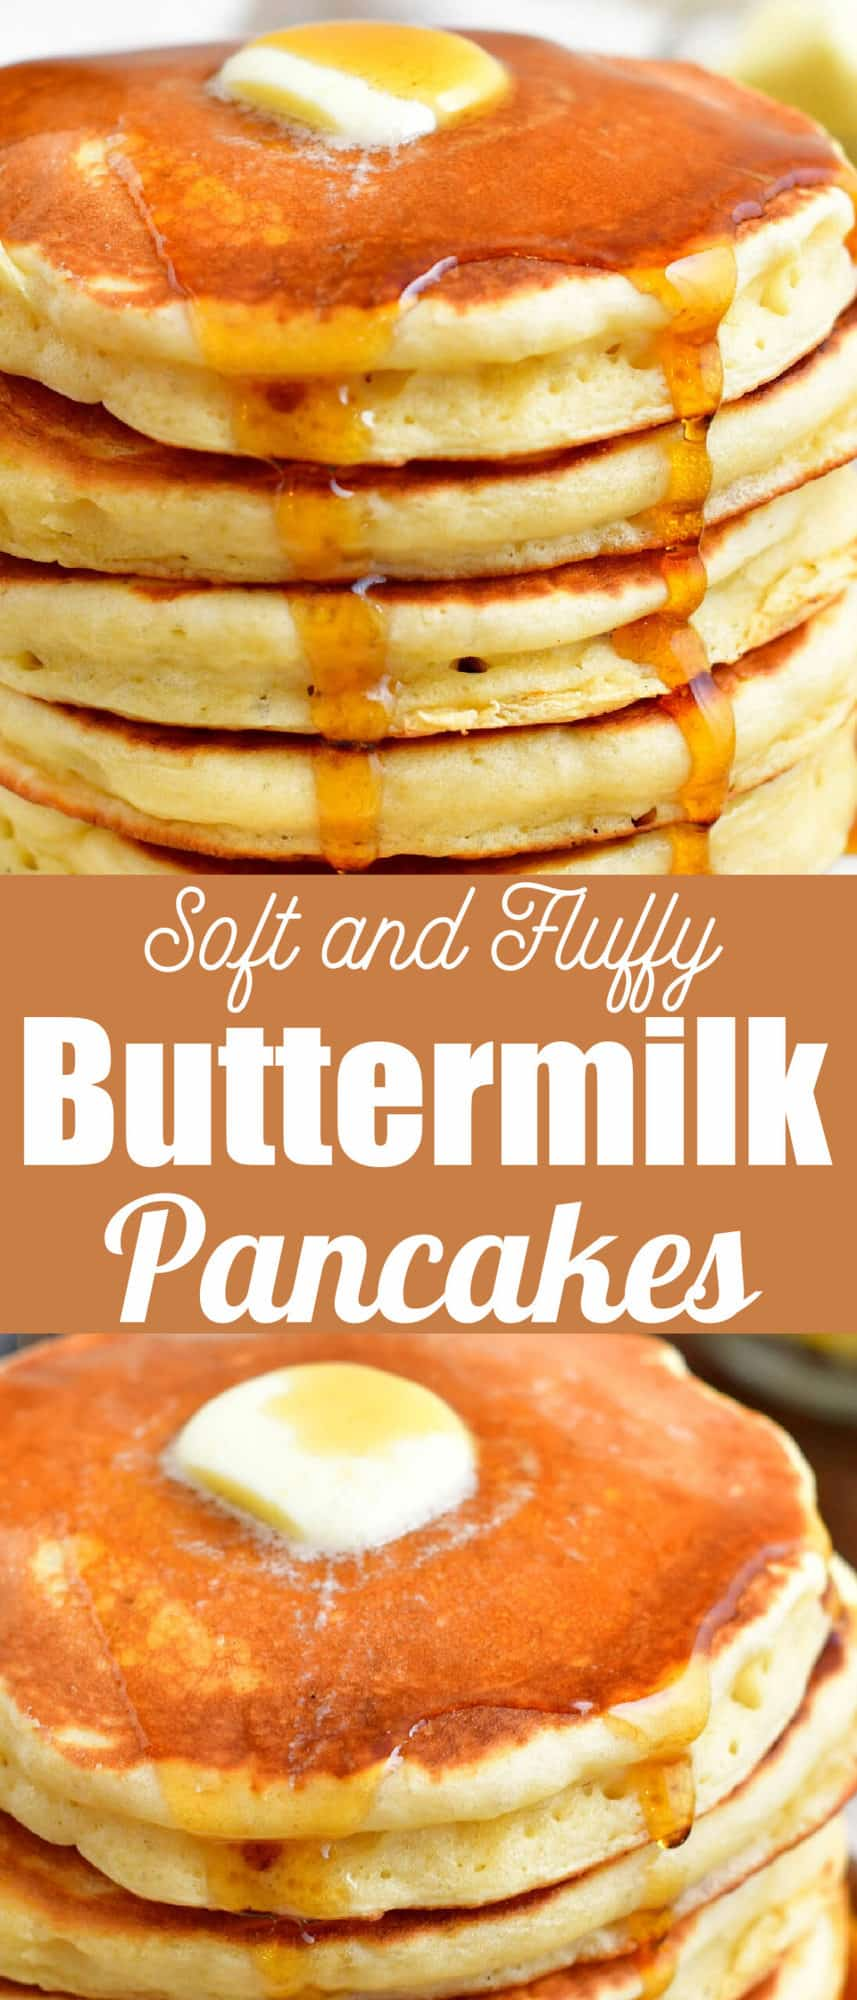 title collage of stacked pancakes with maple syrup dripping off and butter on top